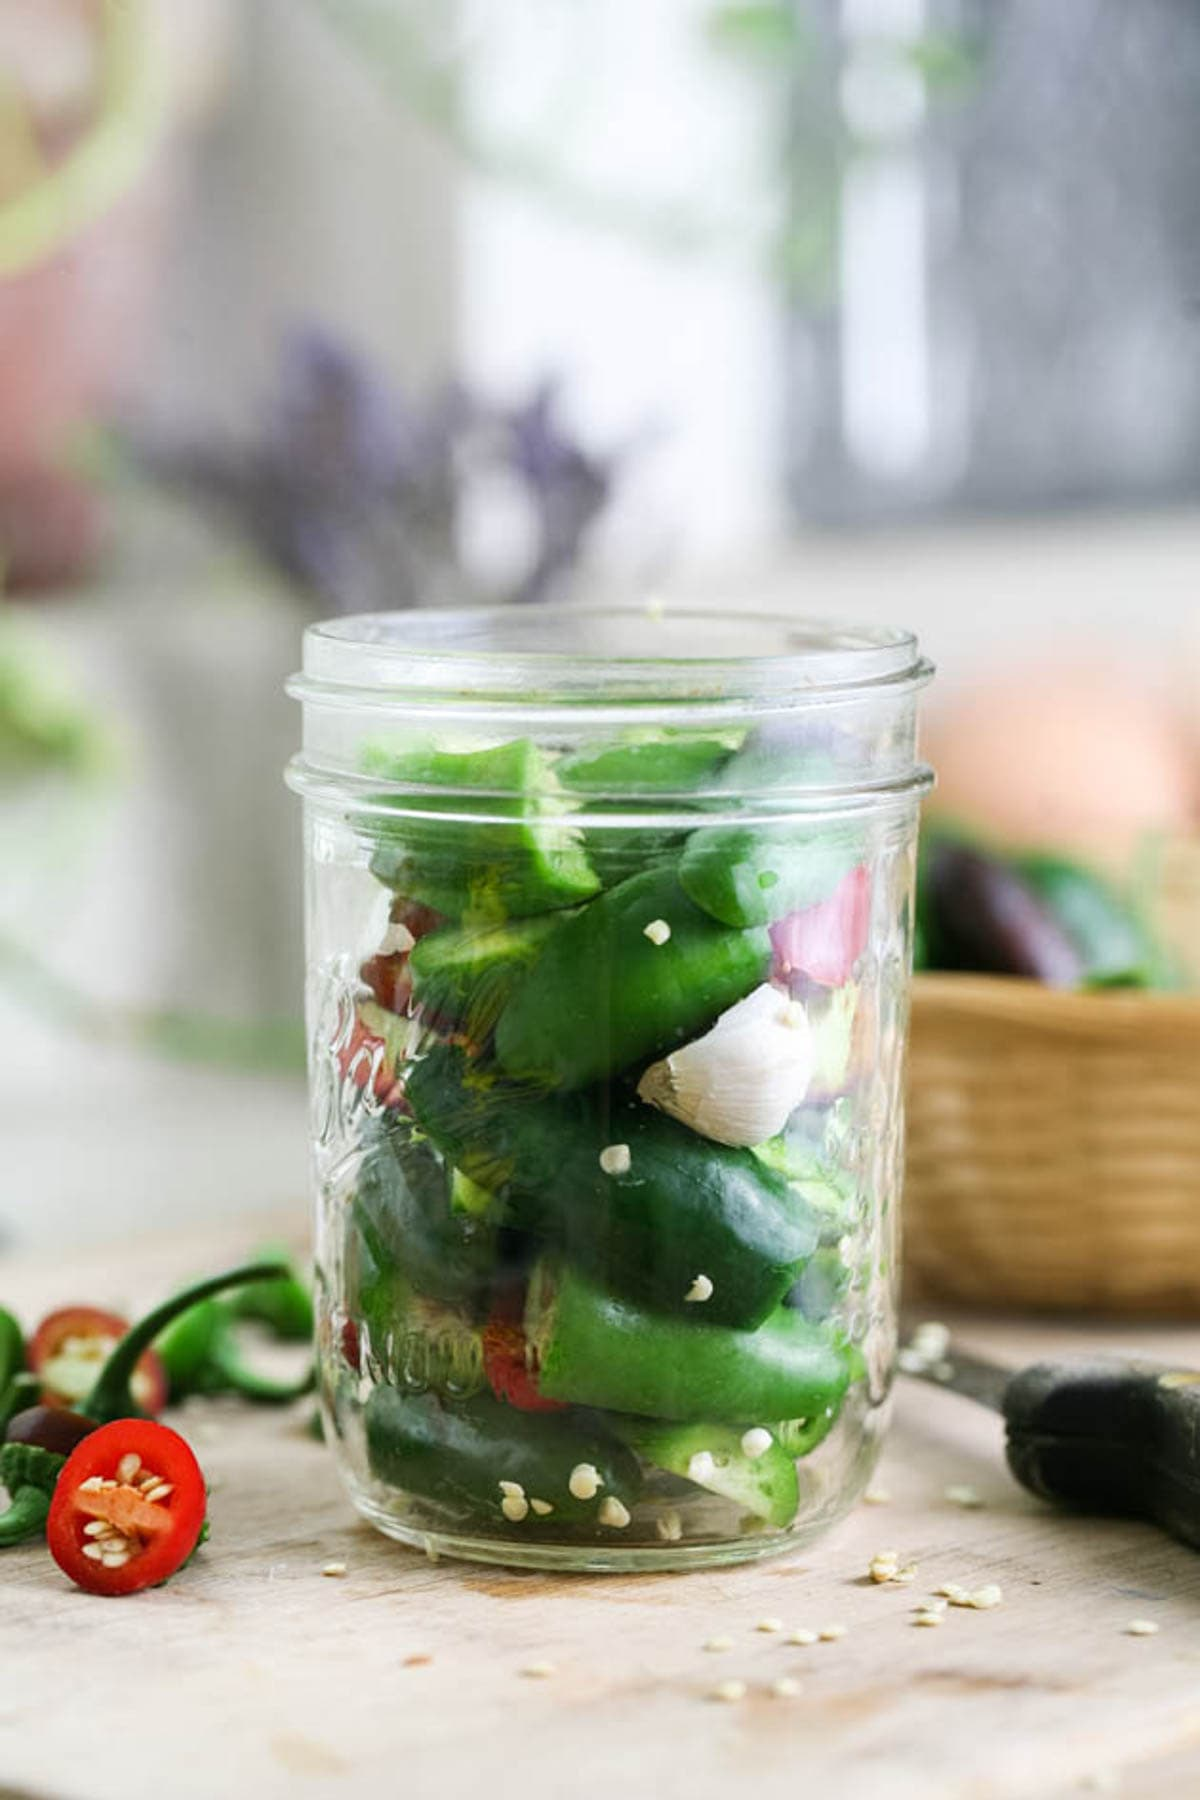 Packing the jar with jalapeno peppers.